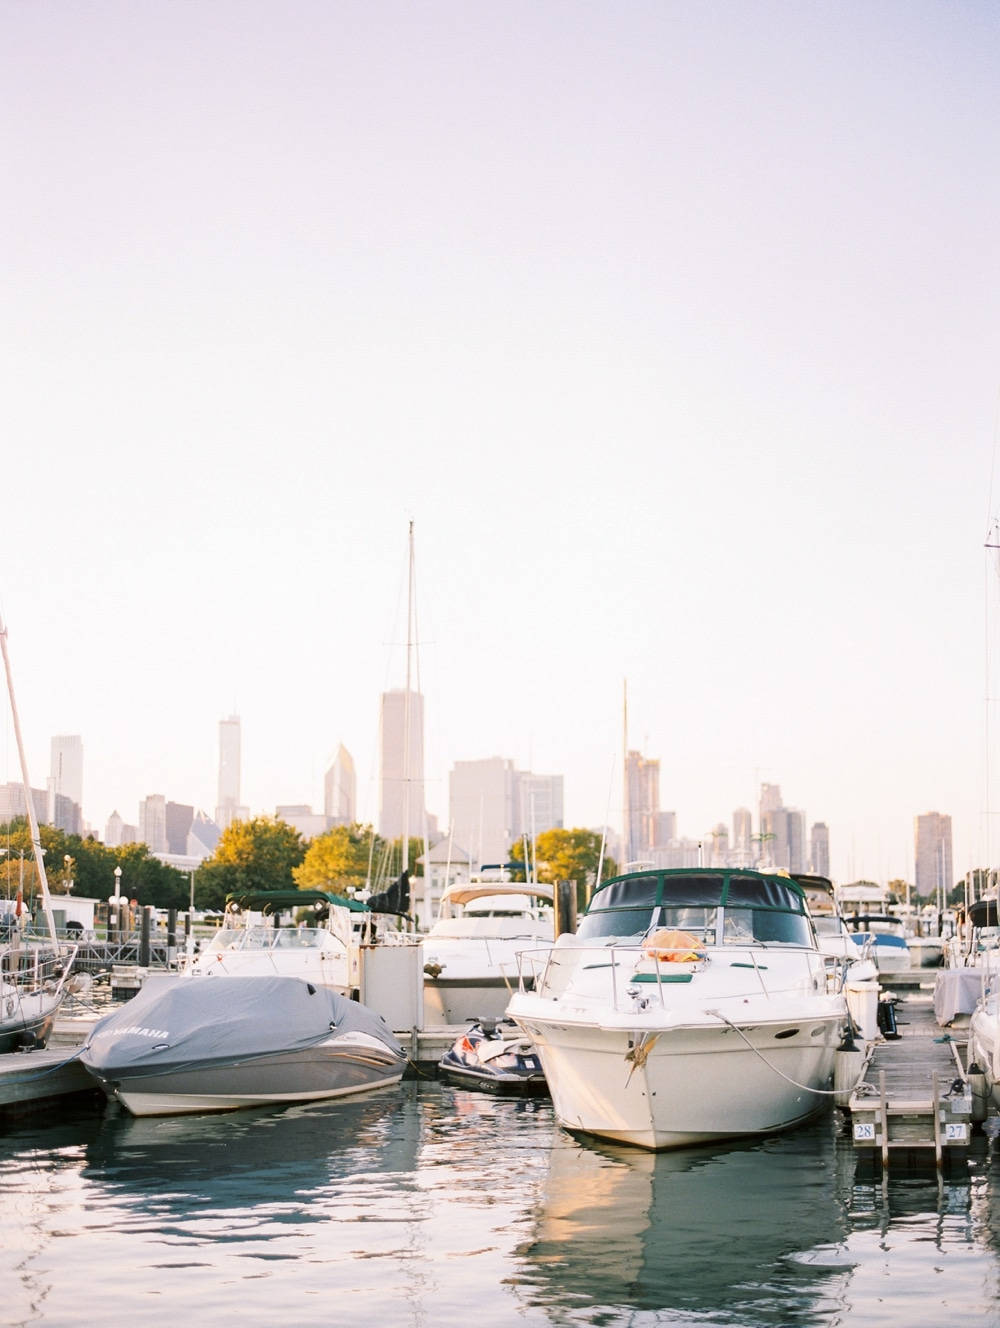 kristin-la-voie-photography-Chicago-wedding-photographer-lake-michigan-sailing-57